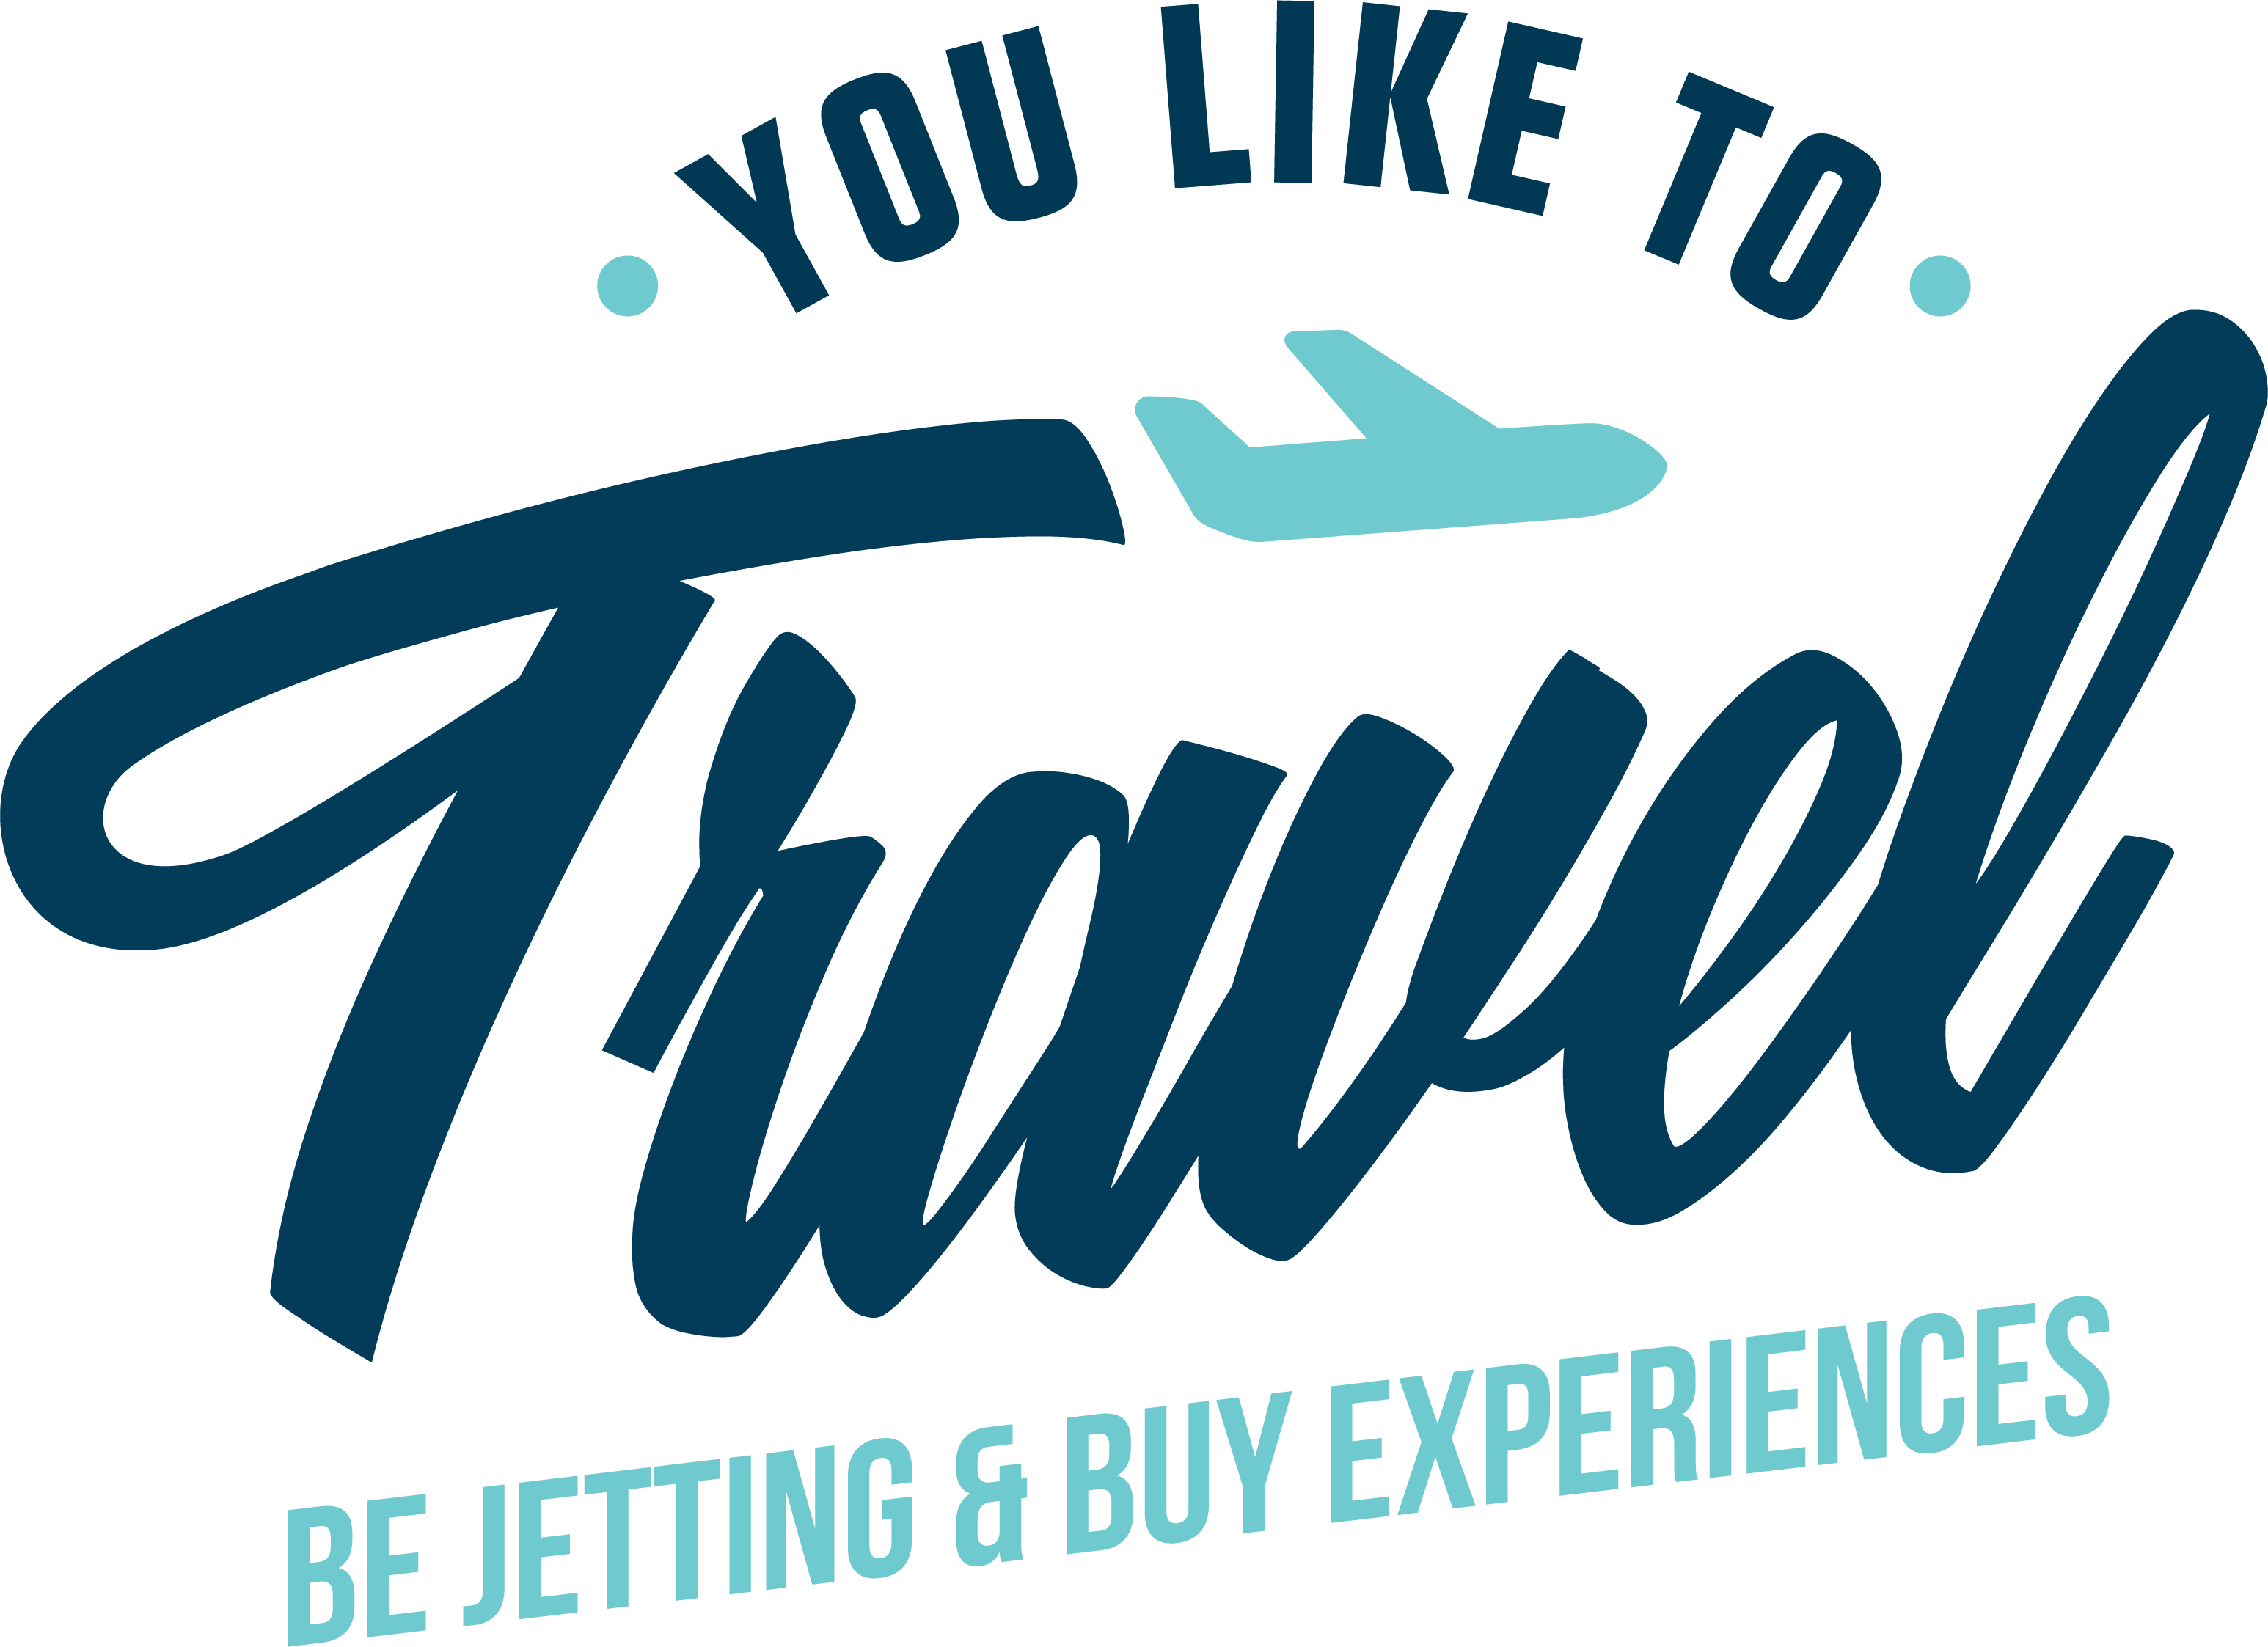 Youliketotravel – Be Jetting & Buy Experiences